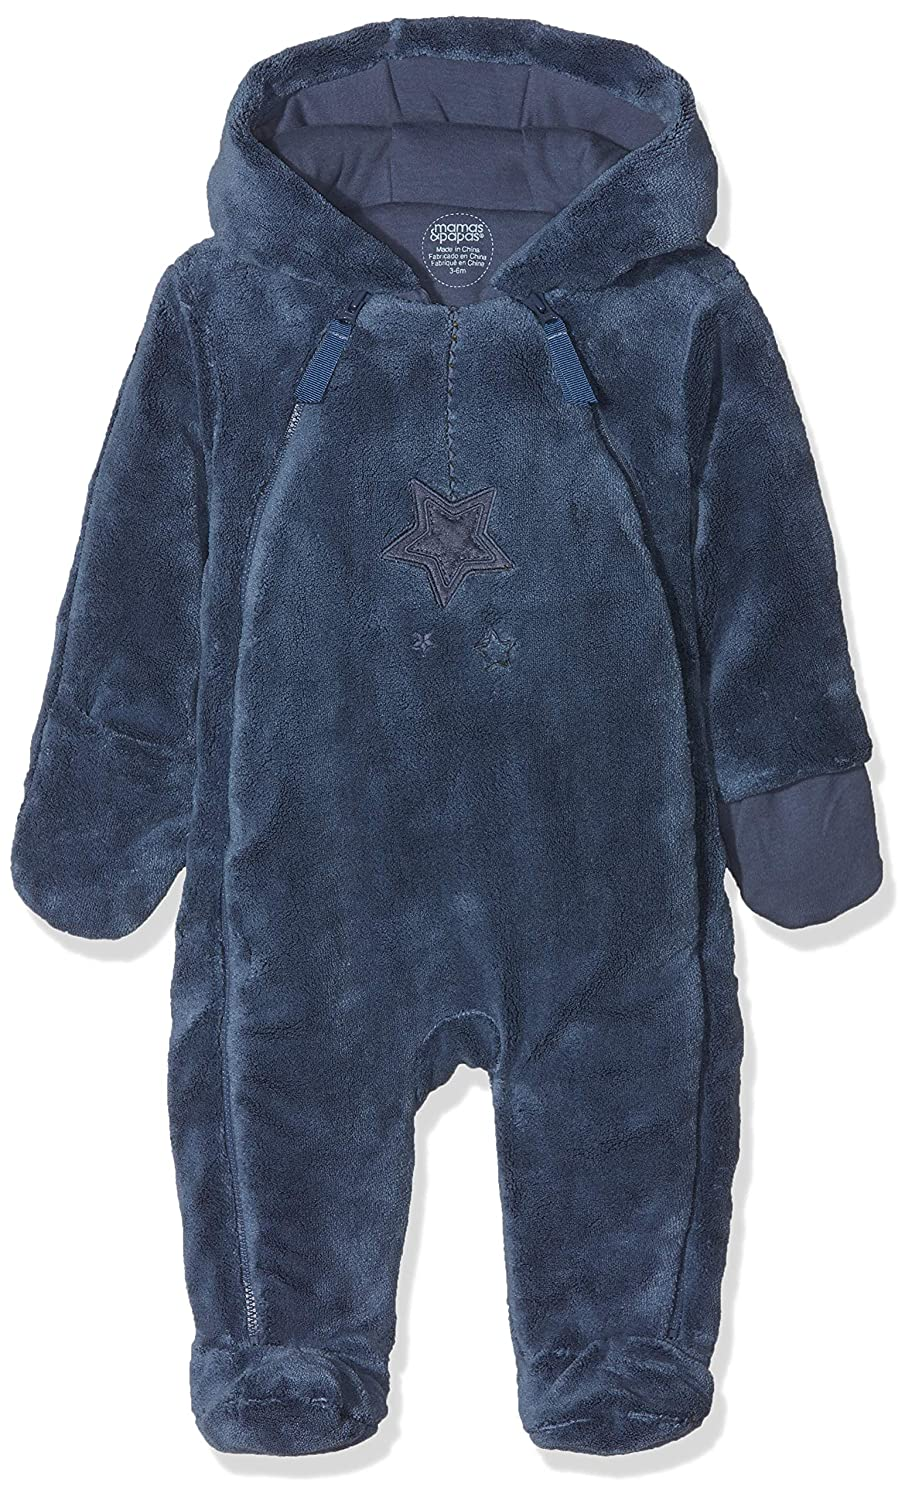 Mamas & Papas Baby Boys' Blue Fur Pramsuit Snowsuit Mamas and Papas